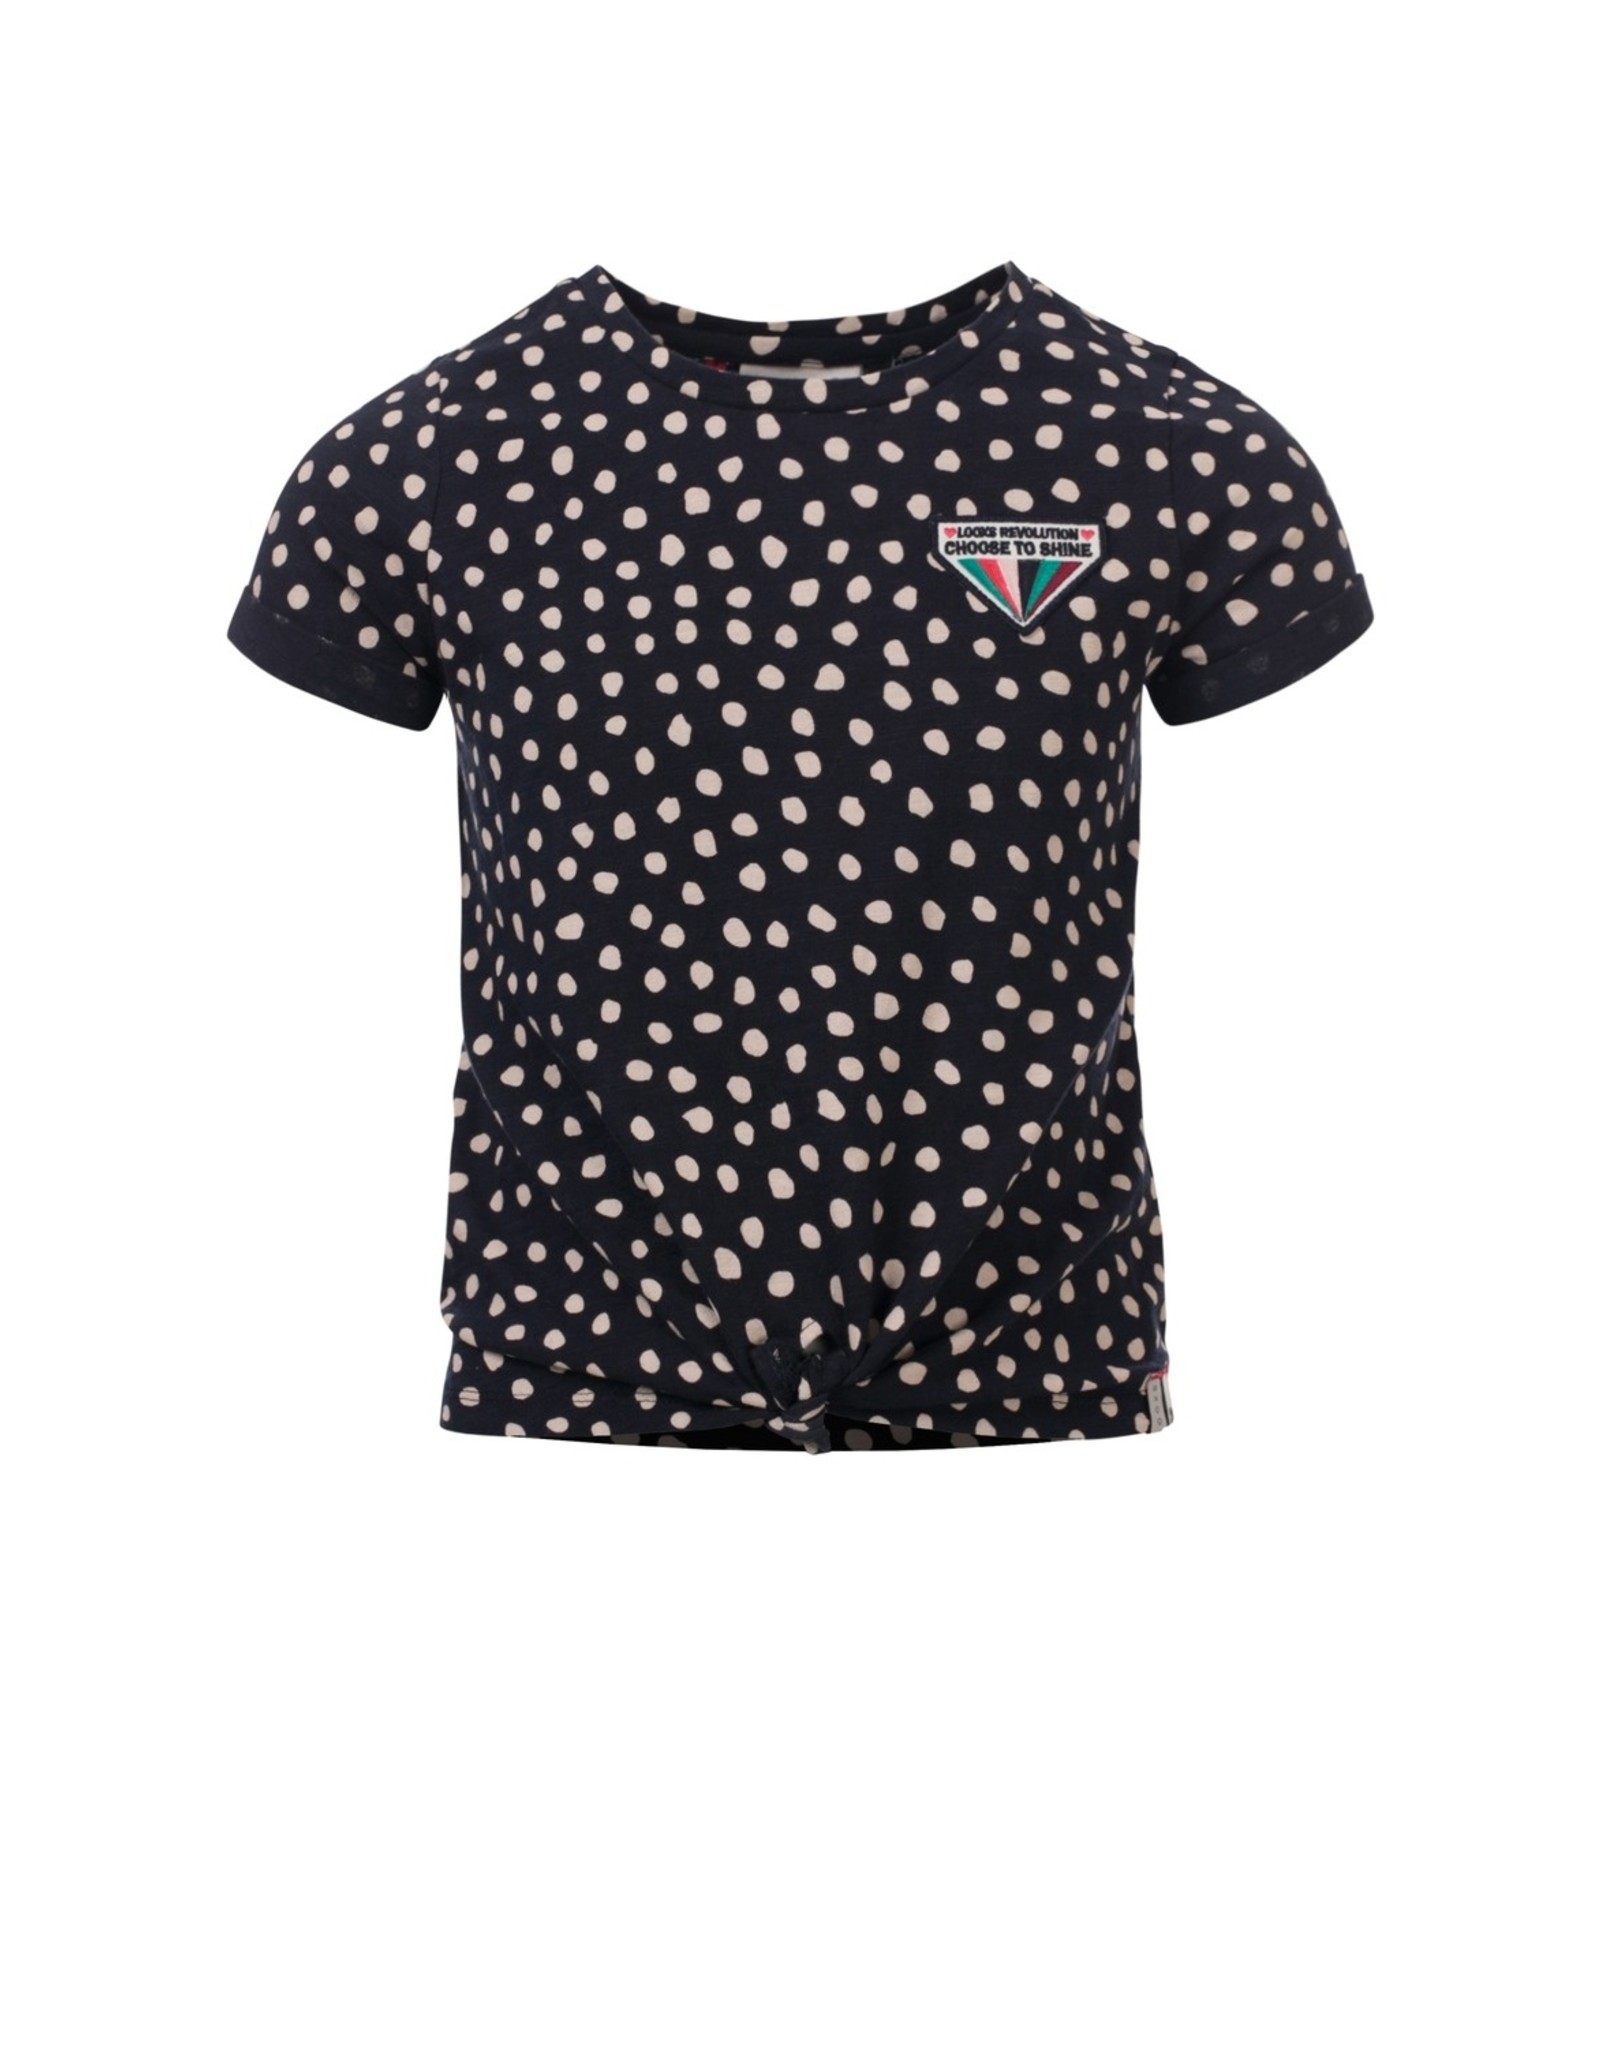 Looxs Girls T-shirt with knot Dots AO